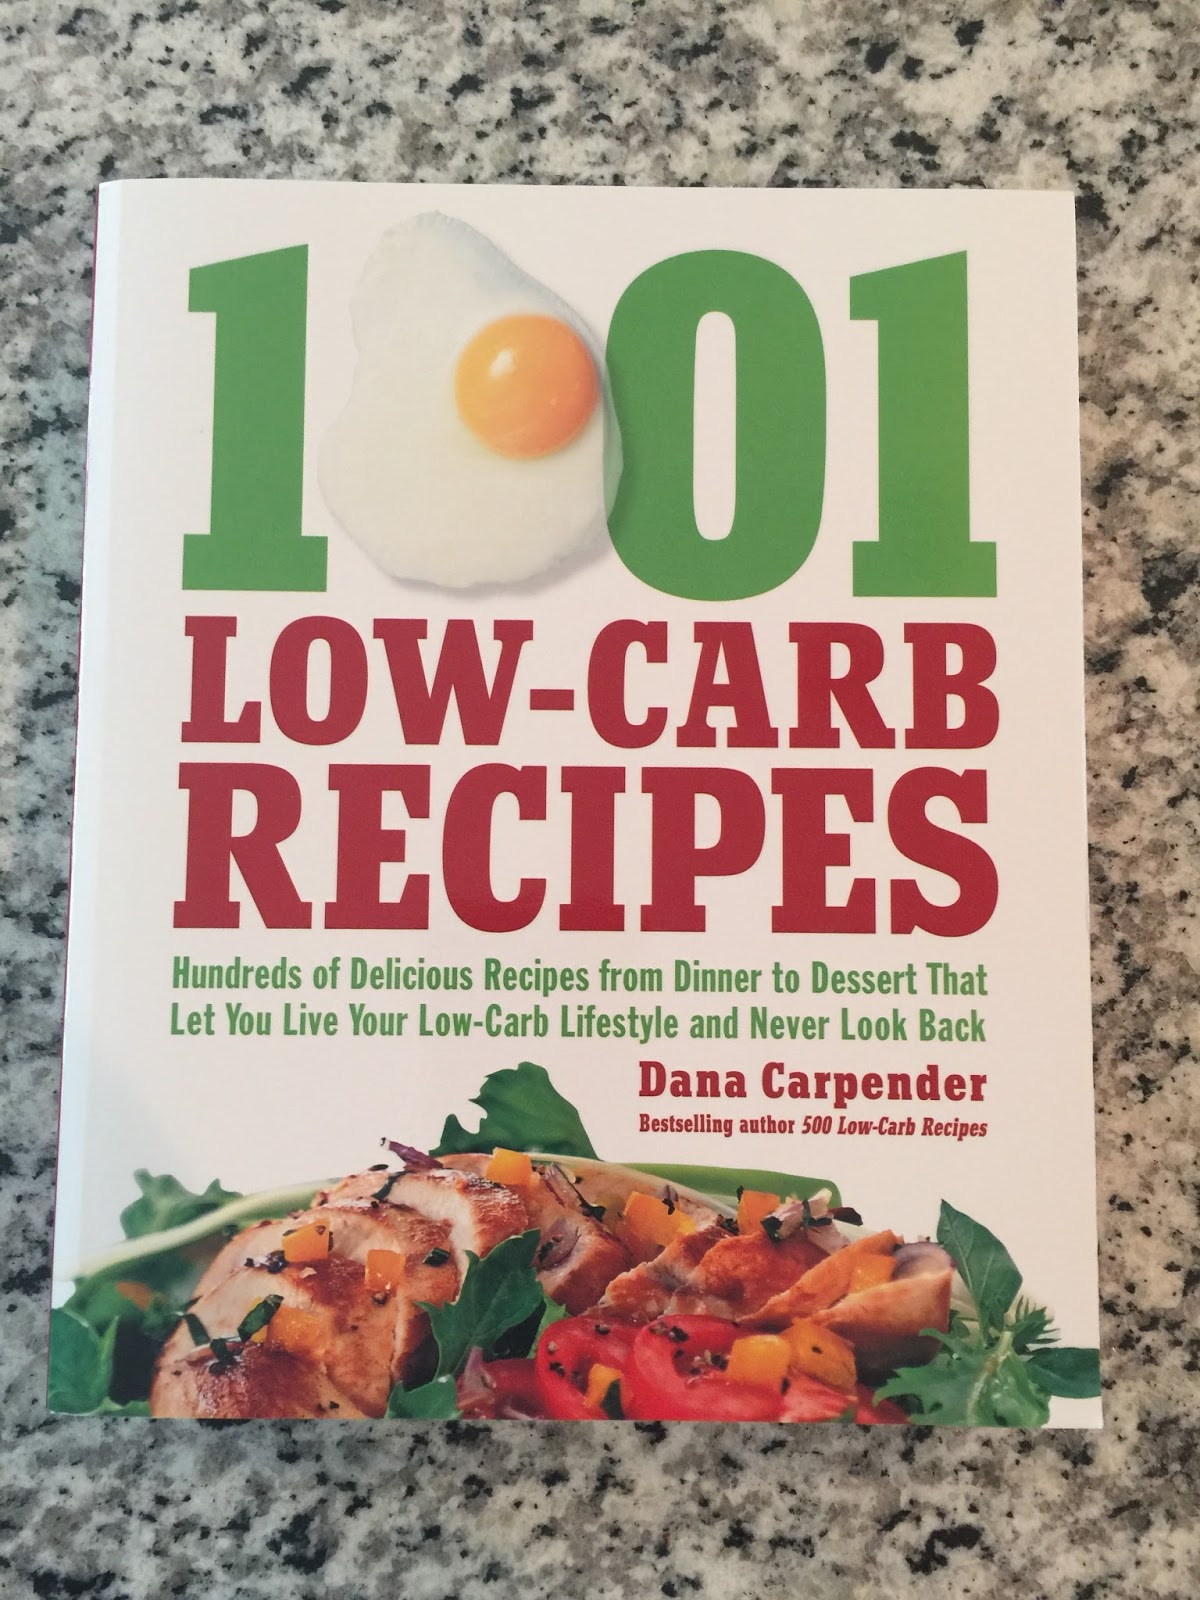 Hundreds of Delicious Recipes from Dinner to Dessert That Let You Live Your Low-Carb Lifestyle and Never Look Back 1,001 Low-Carb Recipes